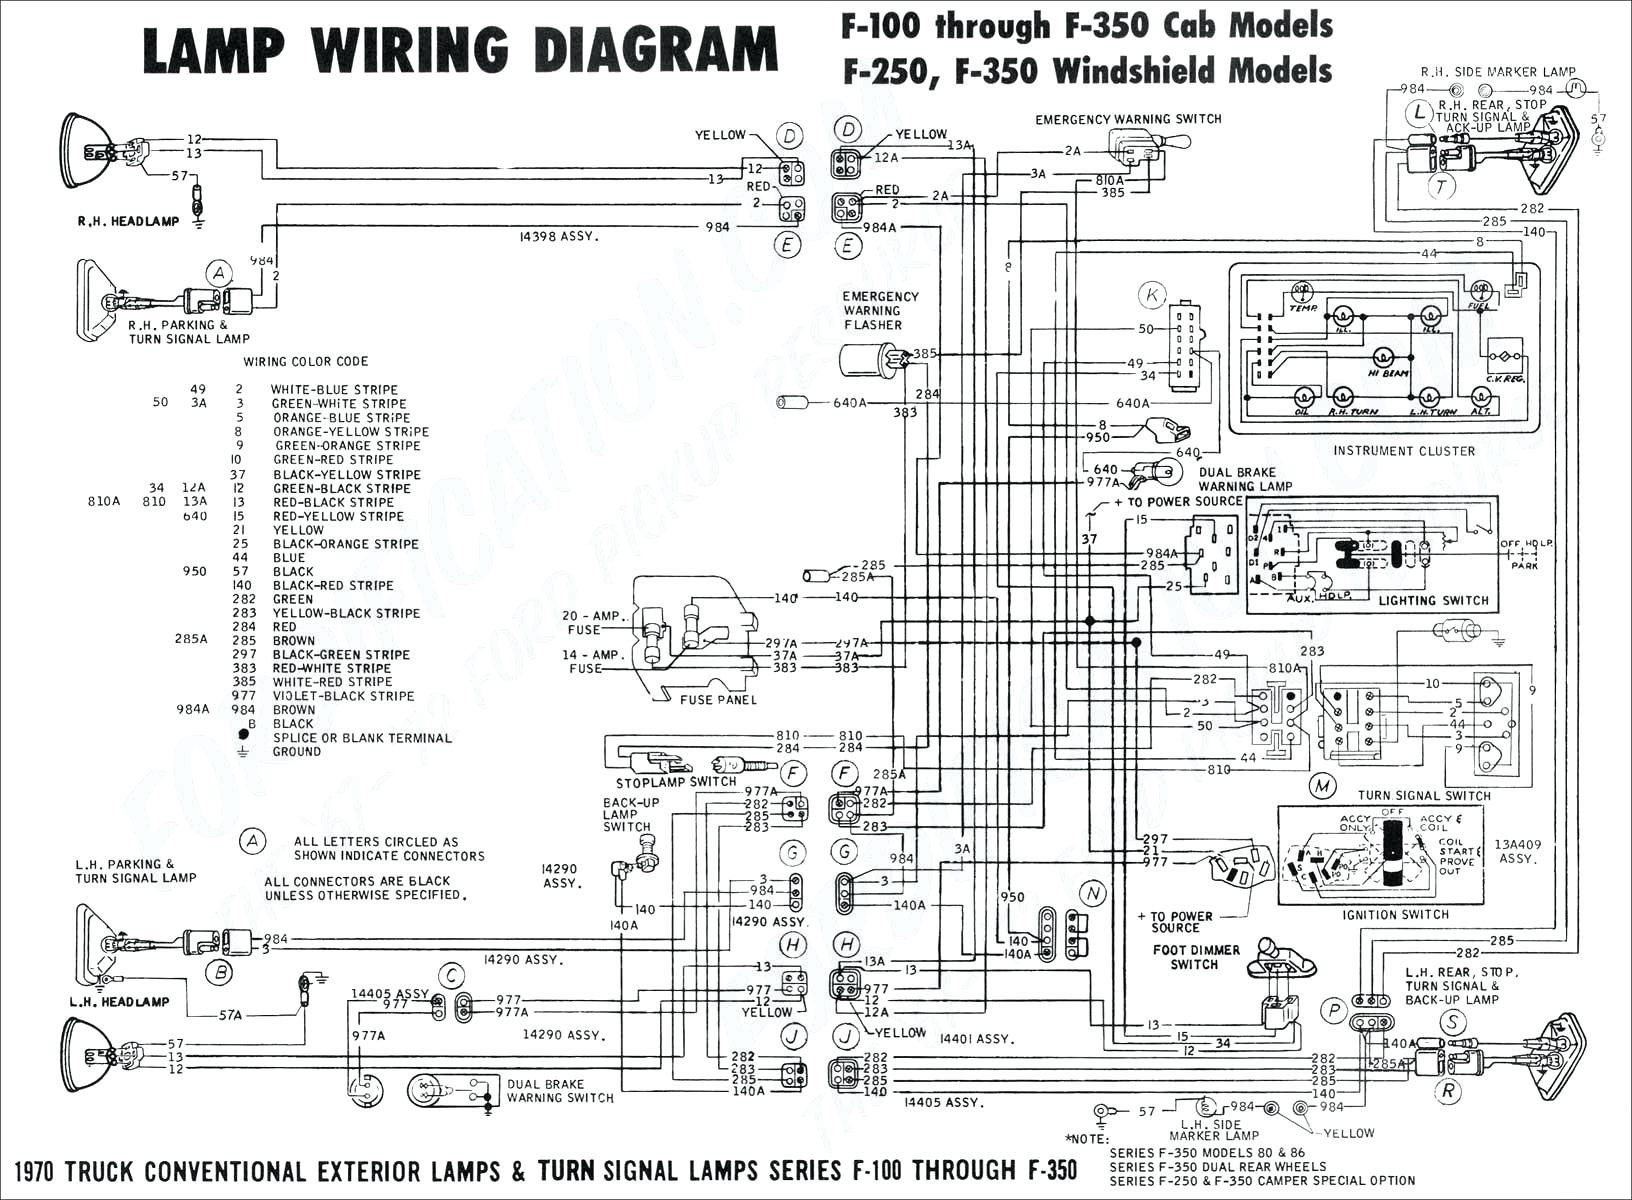 Ford F 150 Lighting Diagram. 2013 f150 exterior lights wire harnesses diagrams  ford. need wiring diagram for 1995 ford f 150 v 8 brake light. 2013 f150  front rear exterior lights wiring2002-acura-tl-radio.info